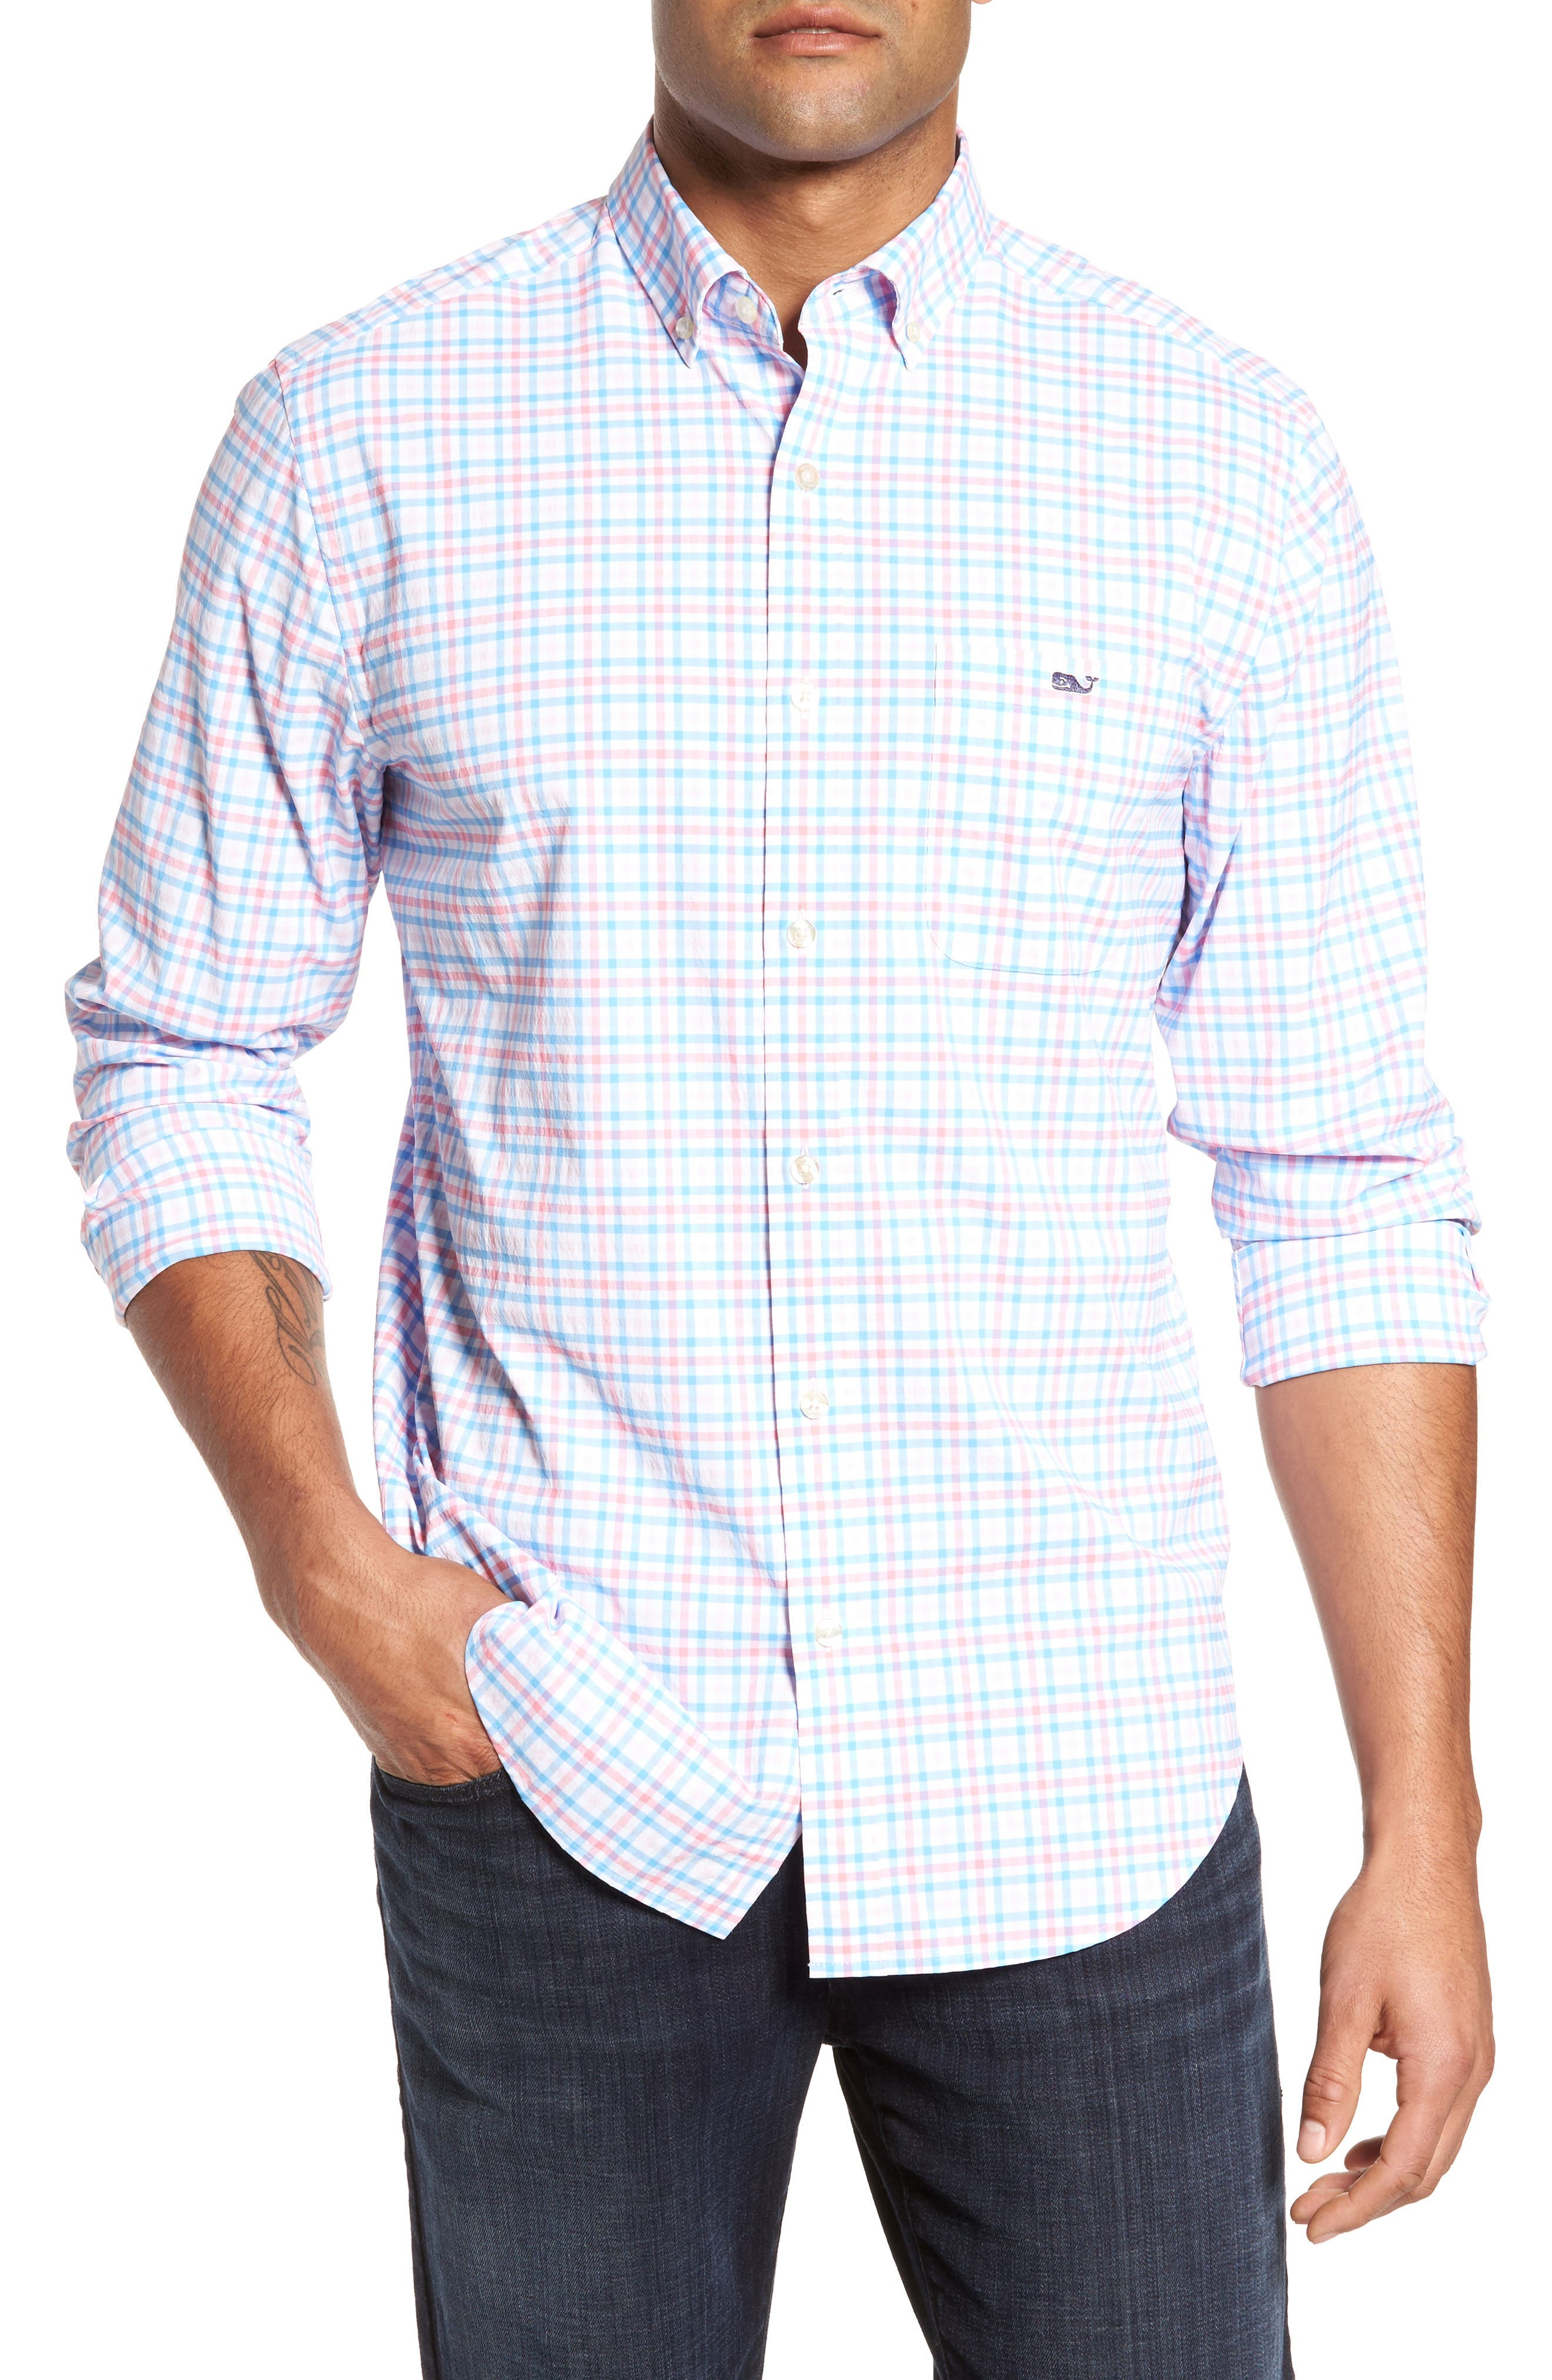 Gulf Shore Tucker Classic Fit Gingham Sport Shirt,                         Main,                         color, 956